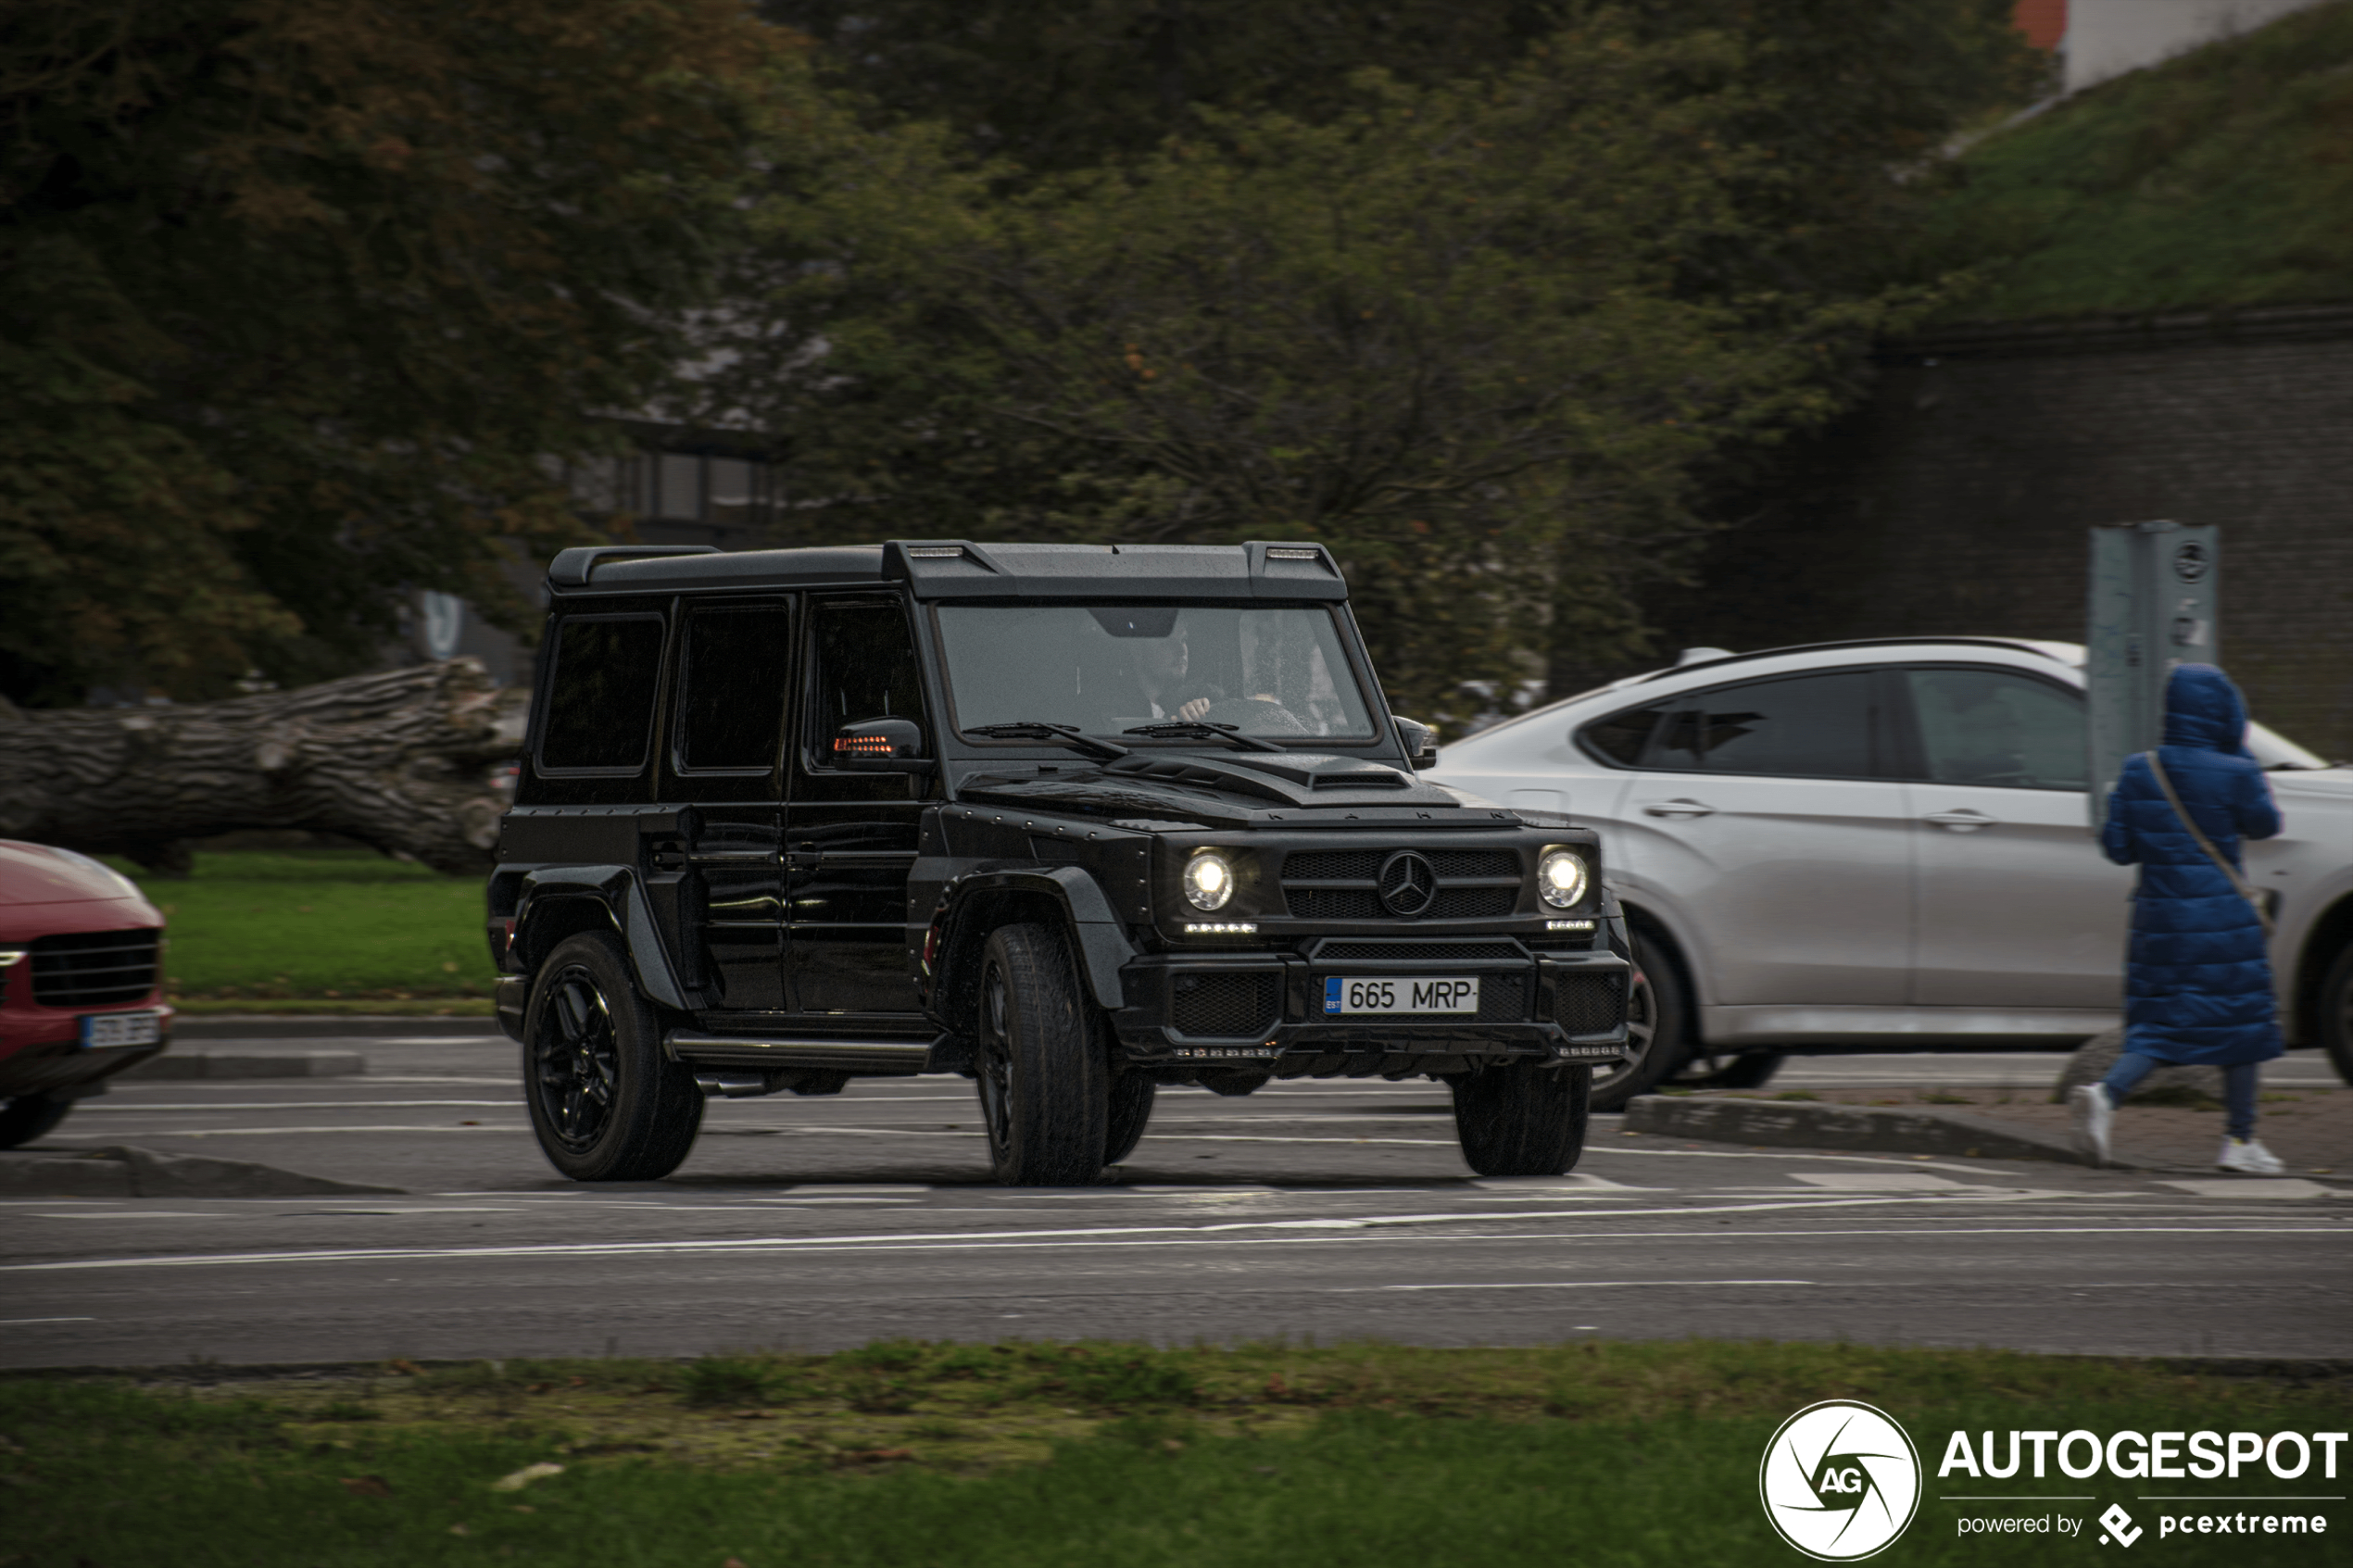 Mercedes-Benz G 63 AMG 2012 Chelsea Truck Co